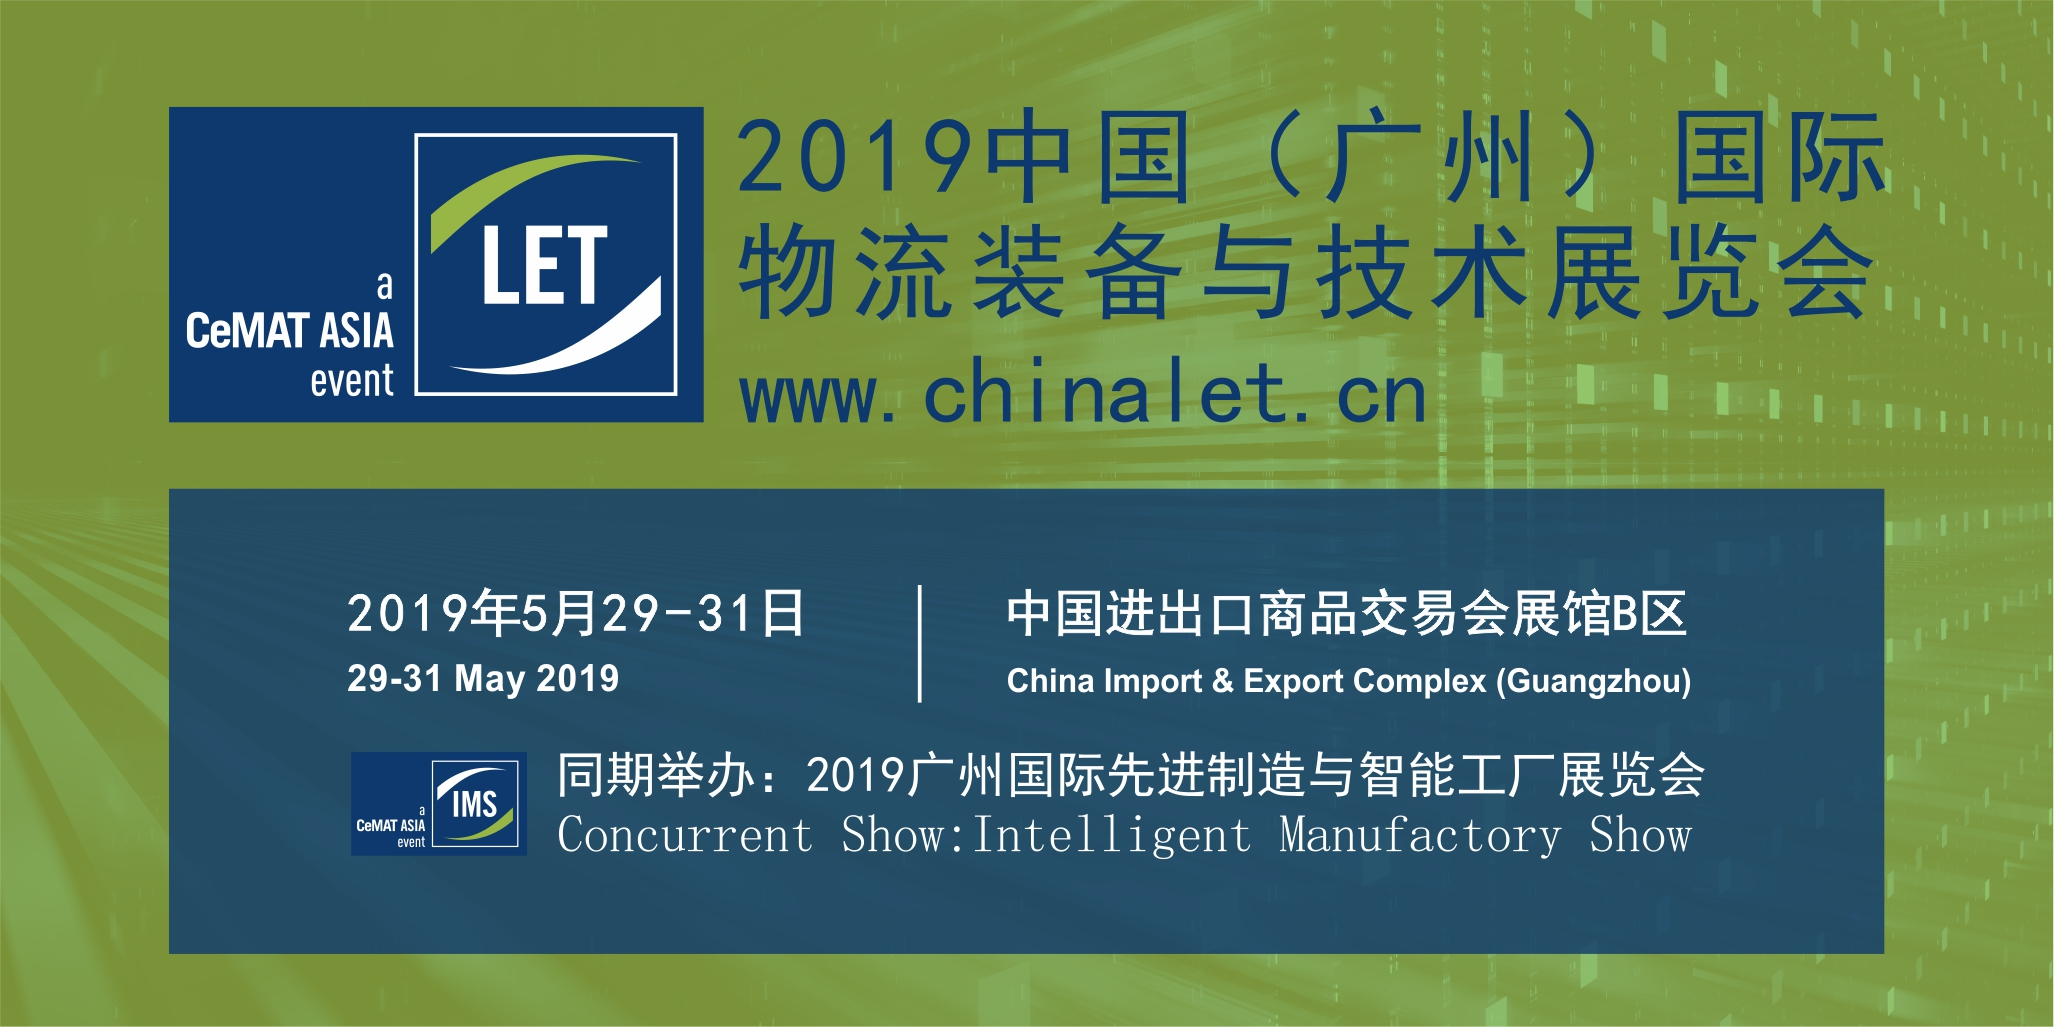 2019 Chinese International Logistics Equipment & Technology Exhibition (Guangzhou)